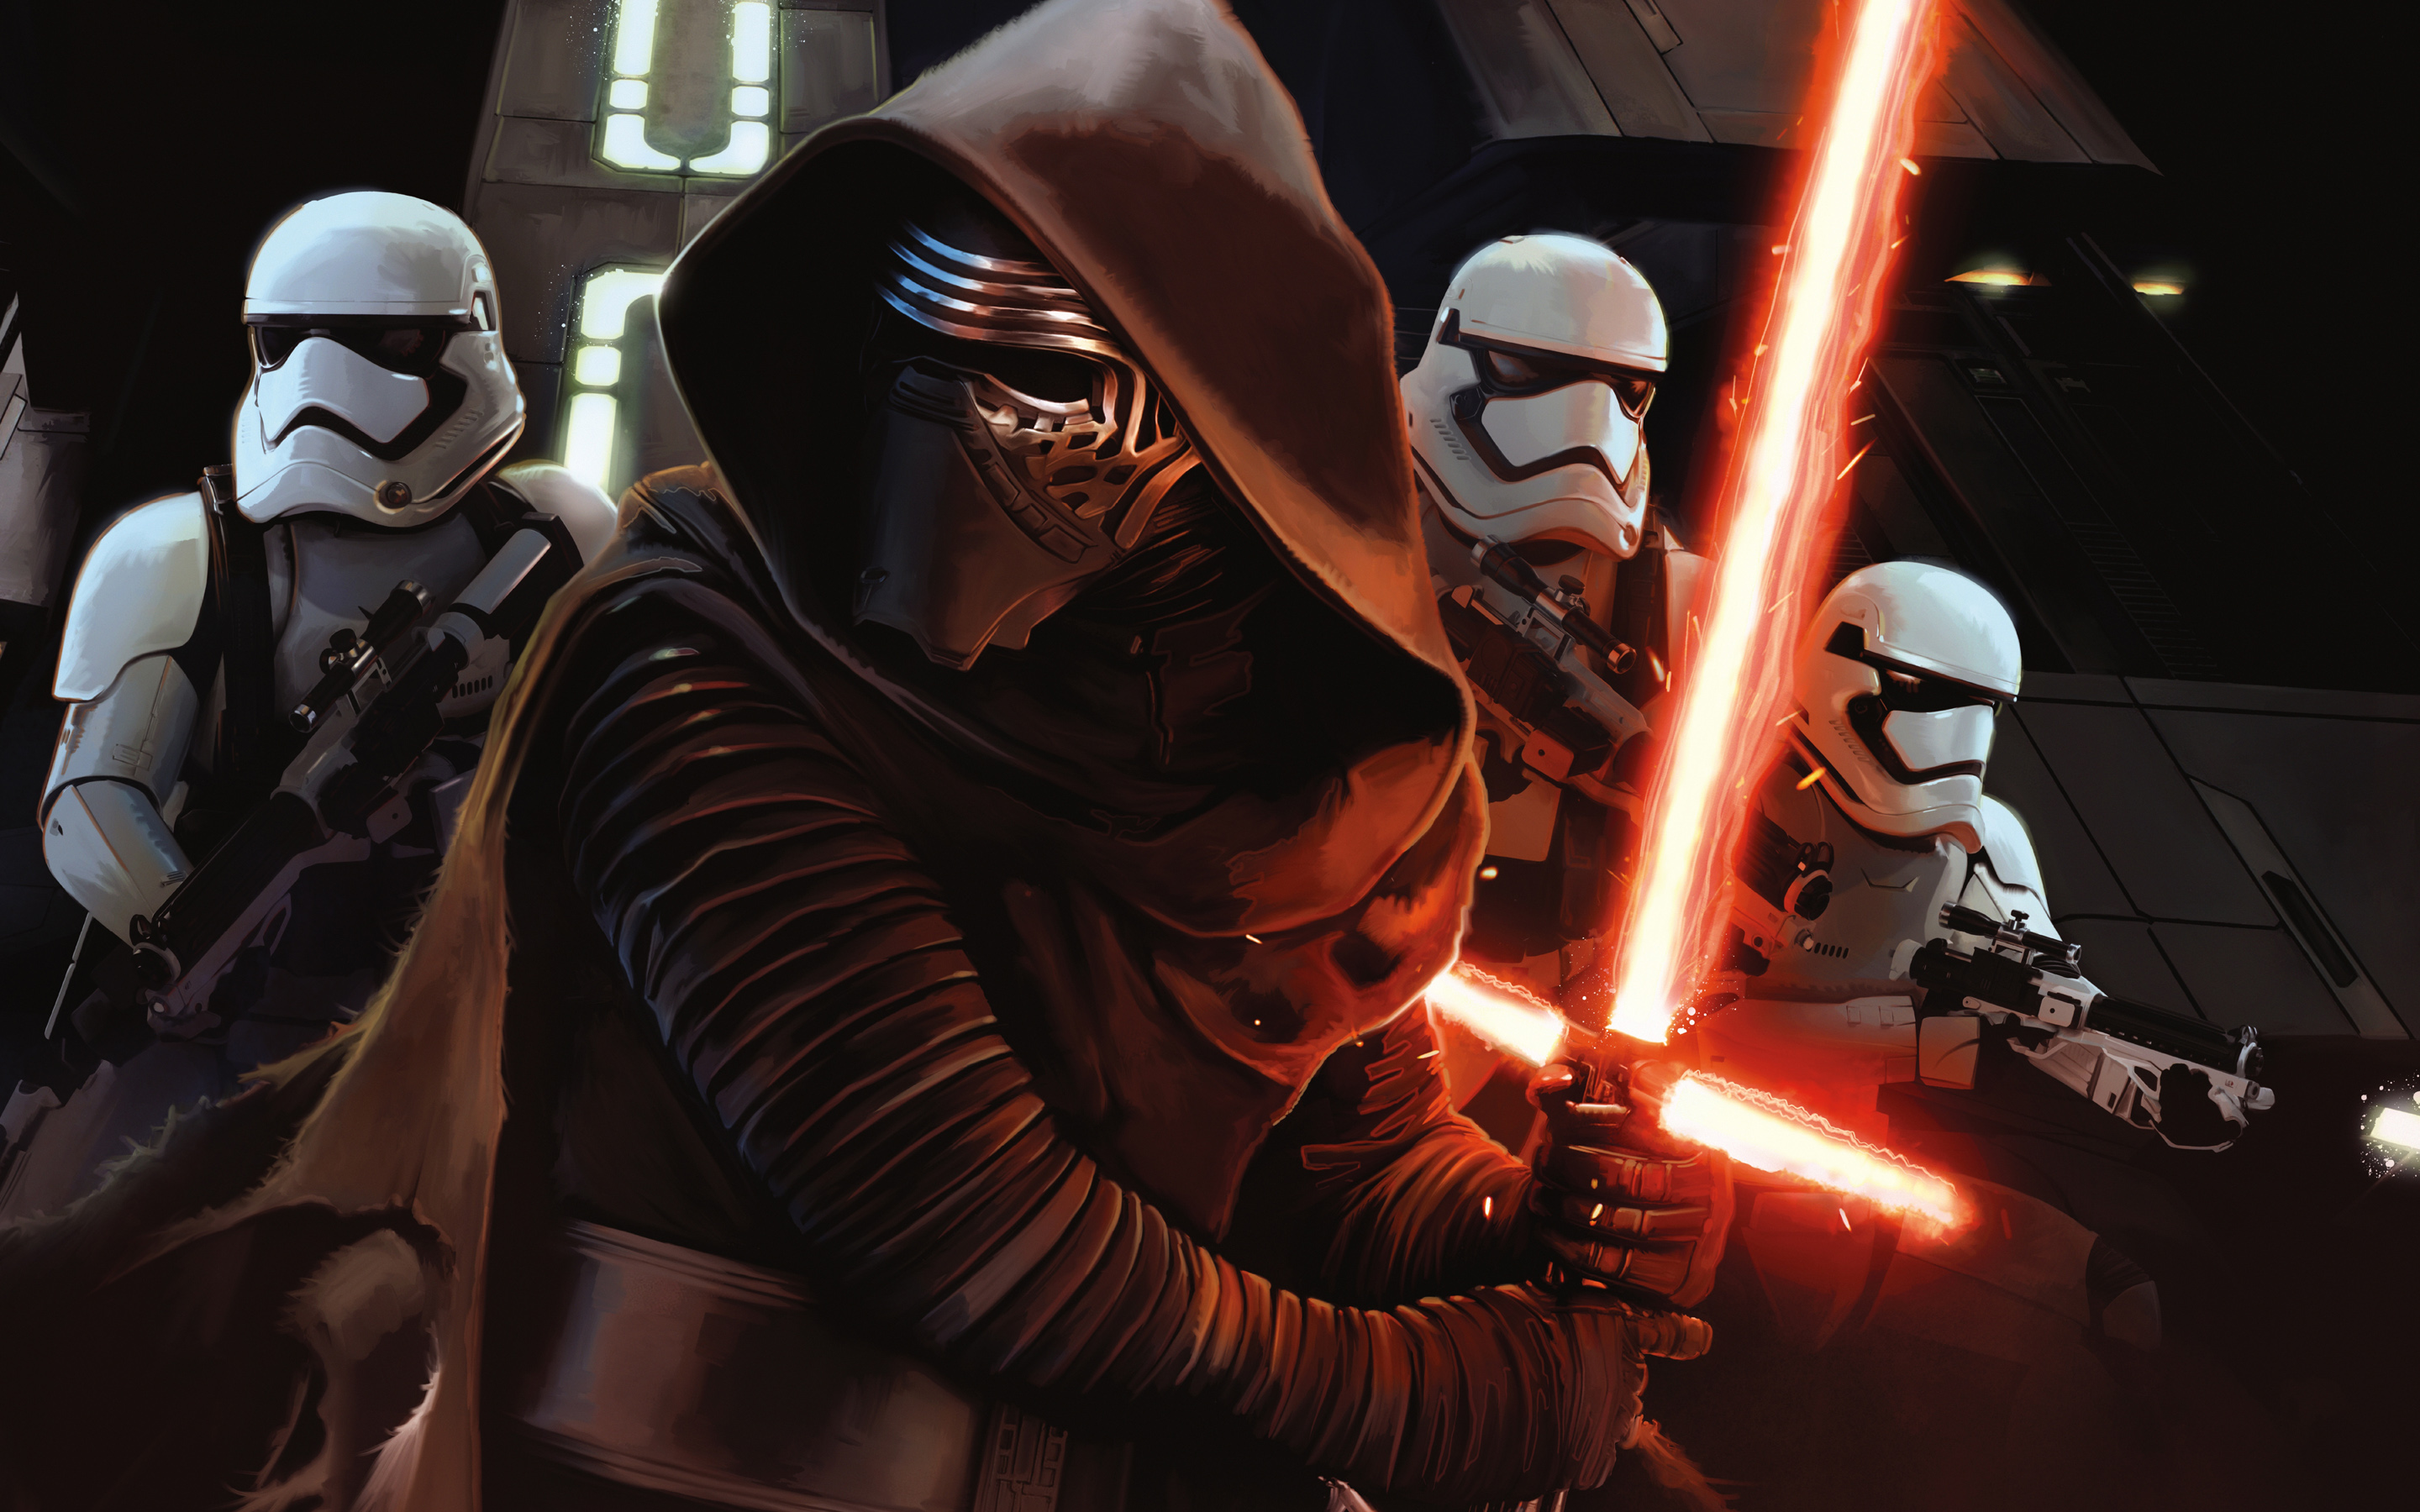 star_wars_episode_vii_the_force_awakens-wide